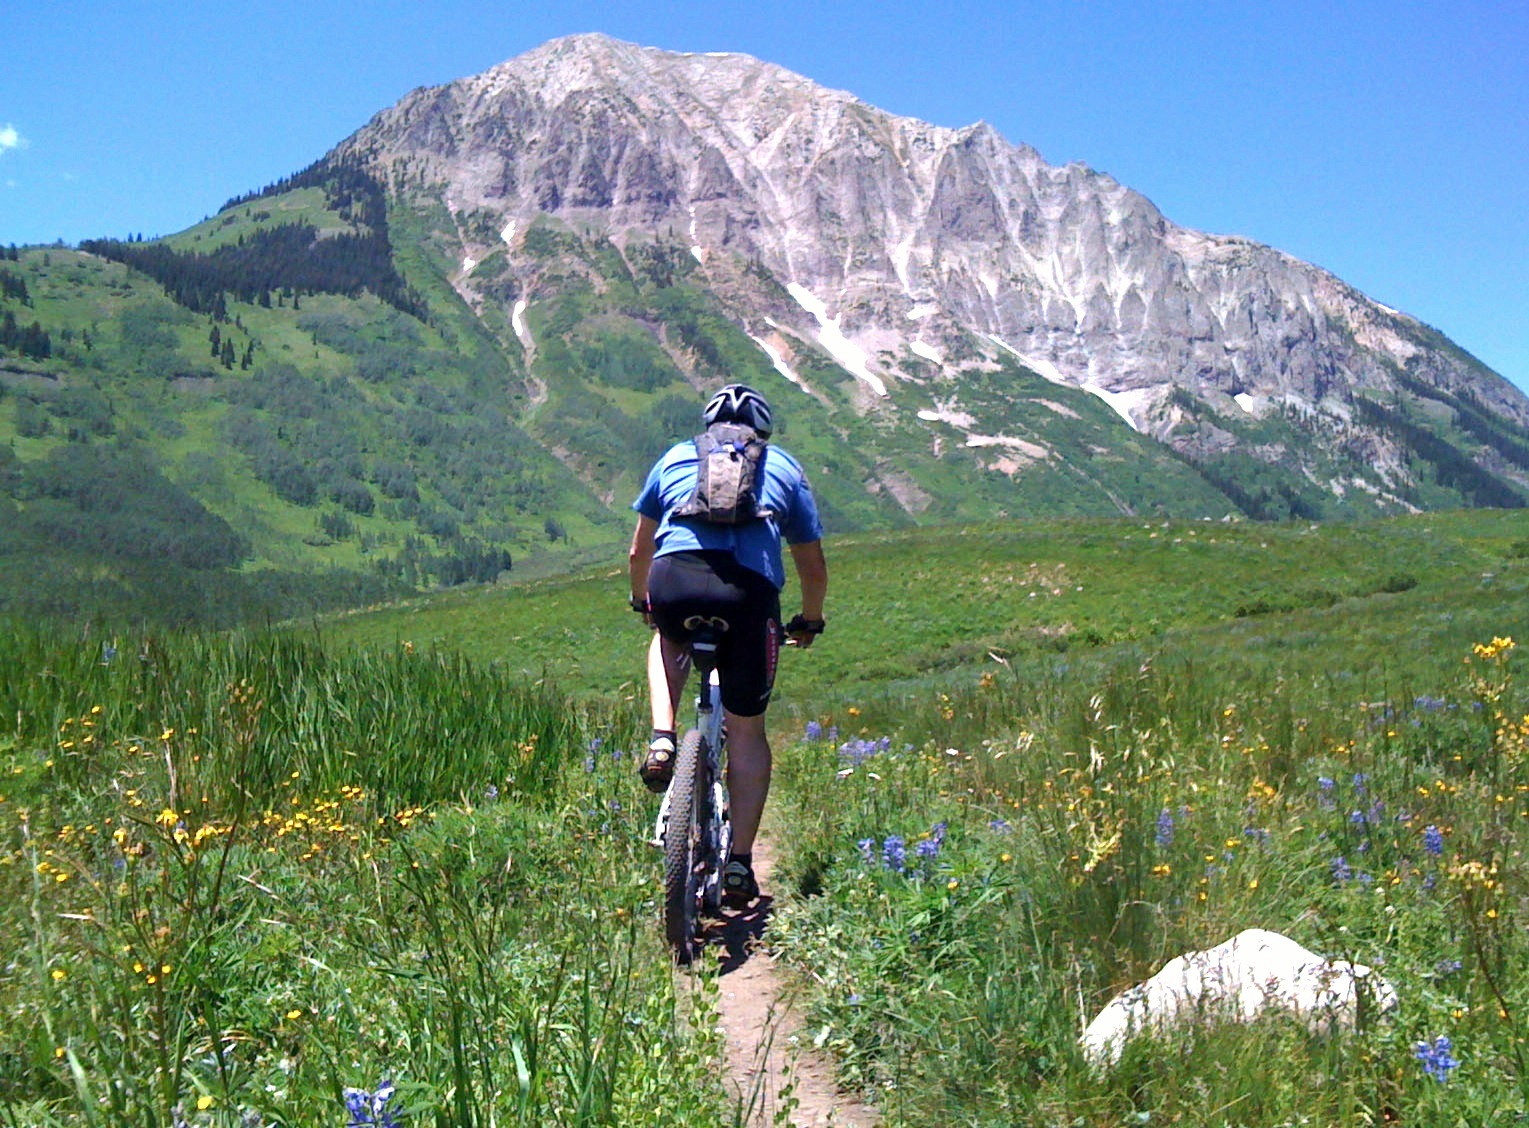 Mountain_Biking_Deer_Creek_Trail,_Crested_Butte,_CO.jpg